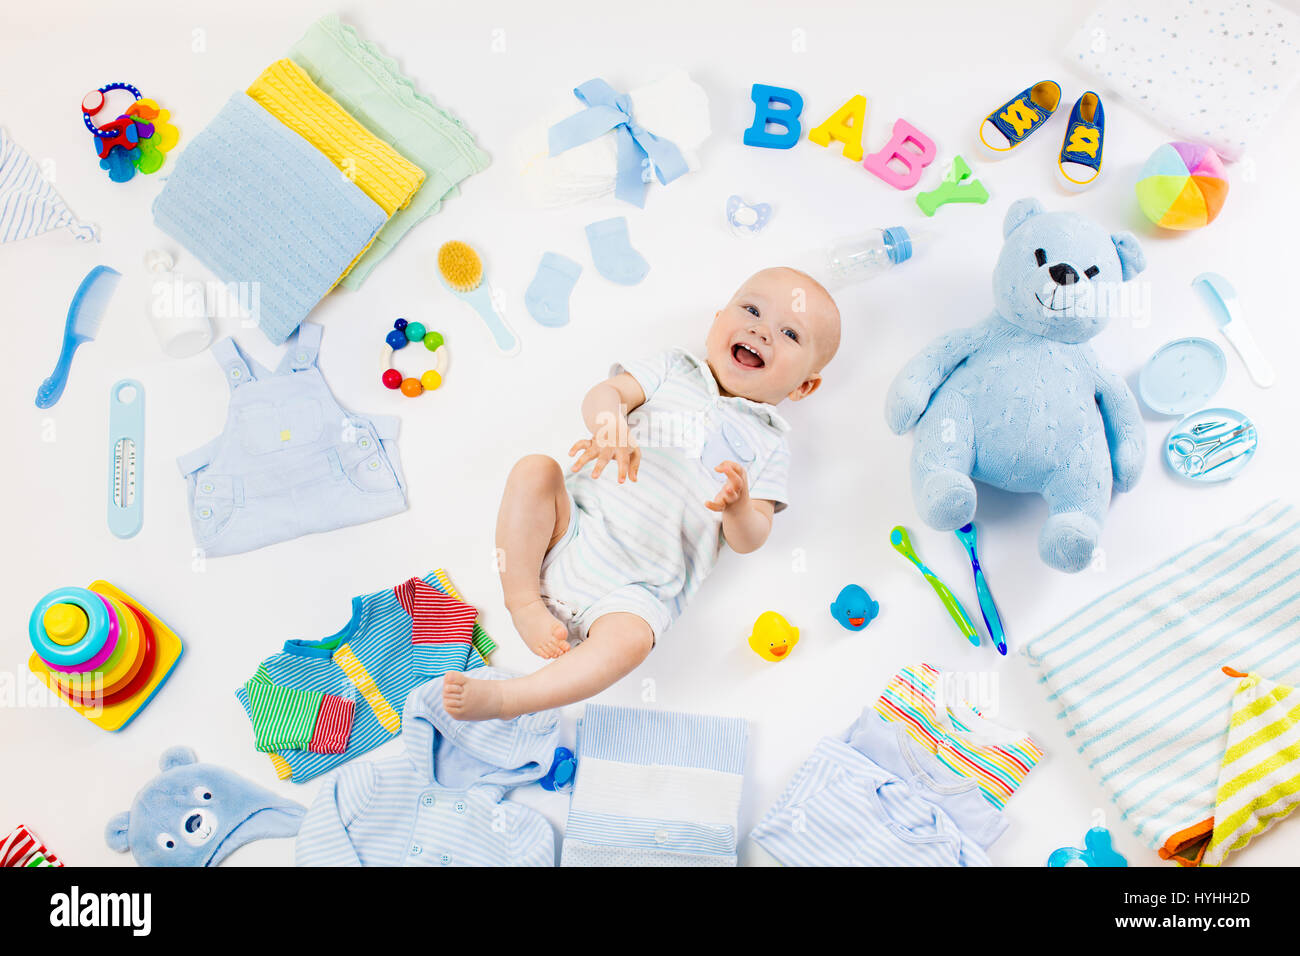 Baby On White Background With Clothing Toiletries Toys And Health